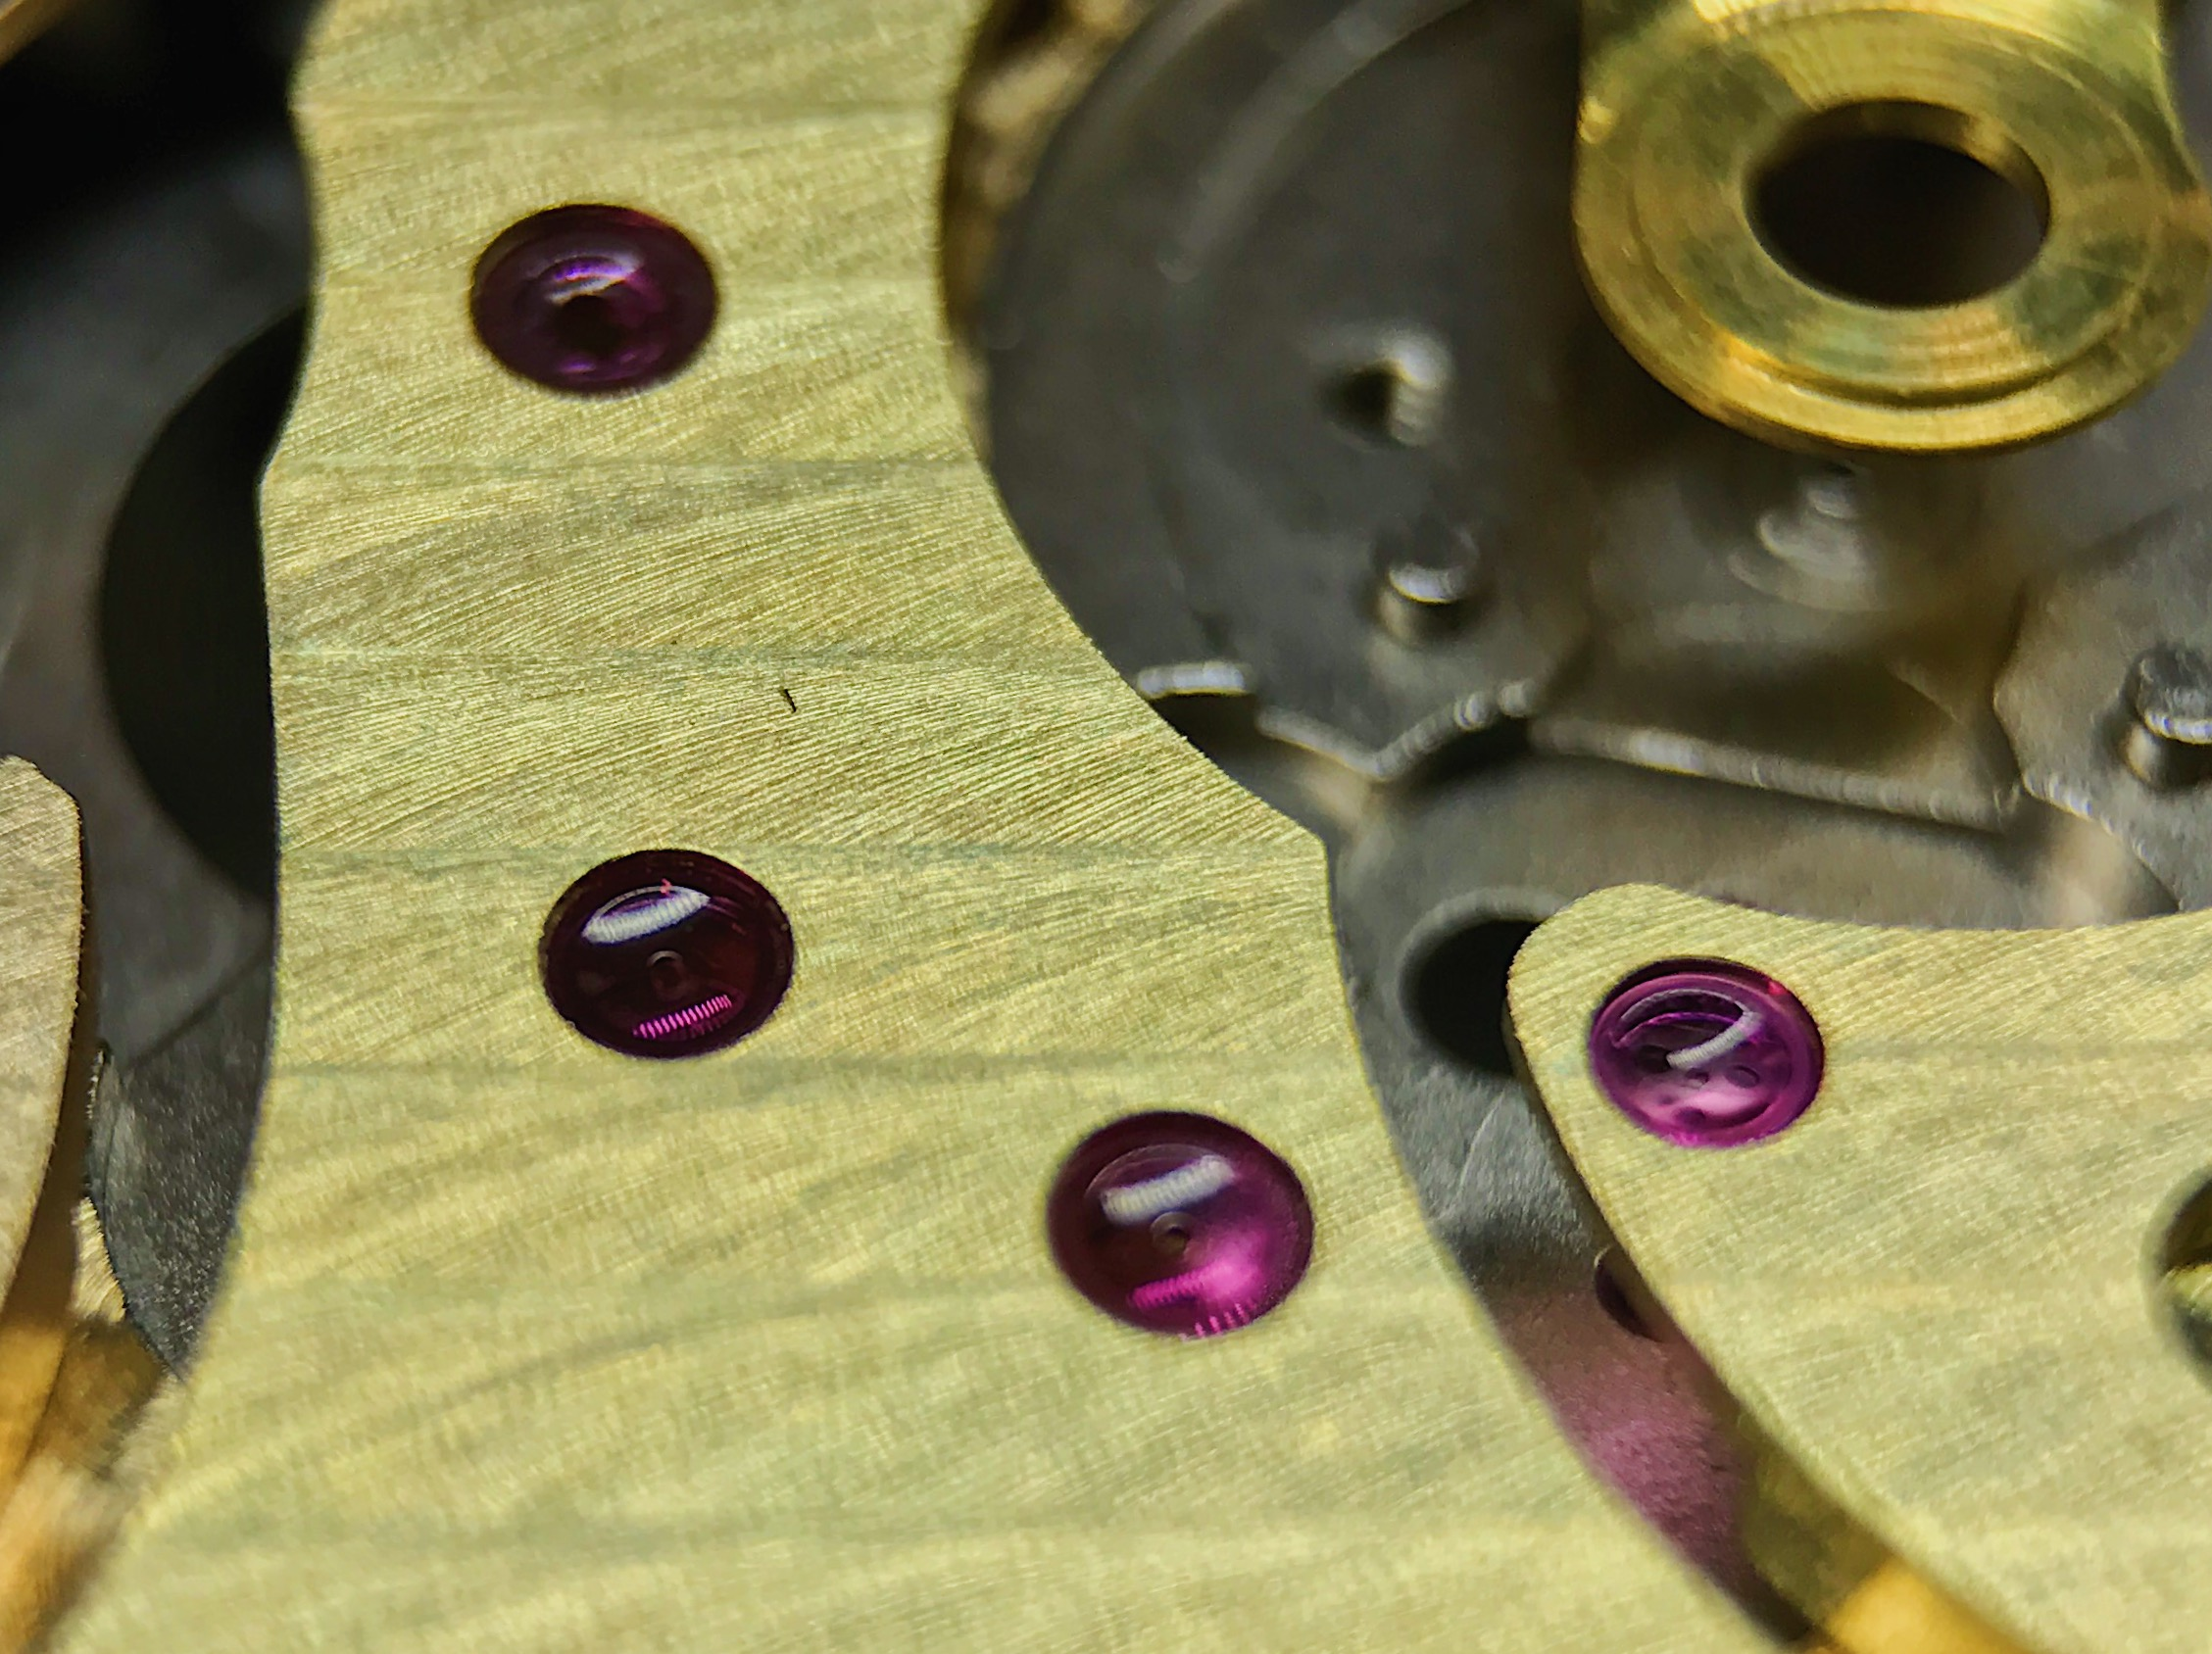 The jewel countersinks are also pretty much gone. I'll have to pop the jewels out to rechamfer the holes.